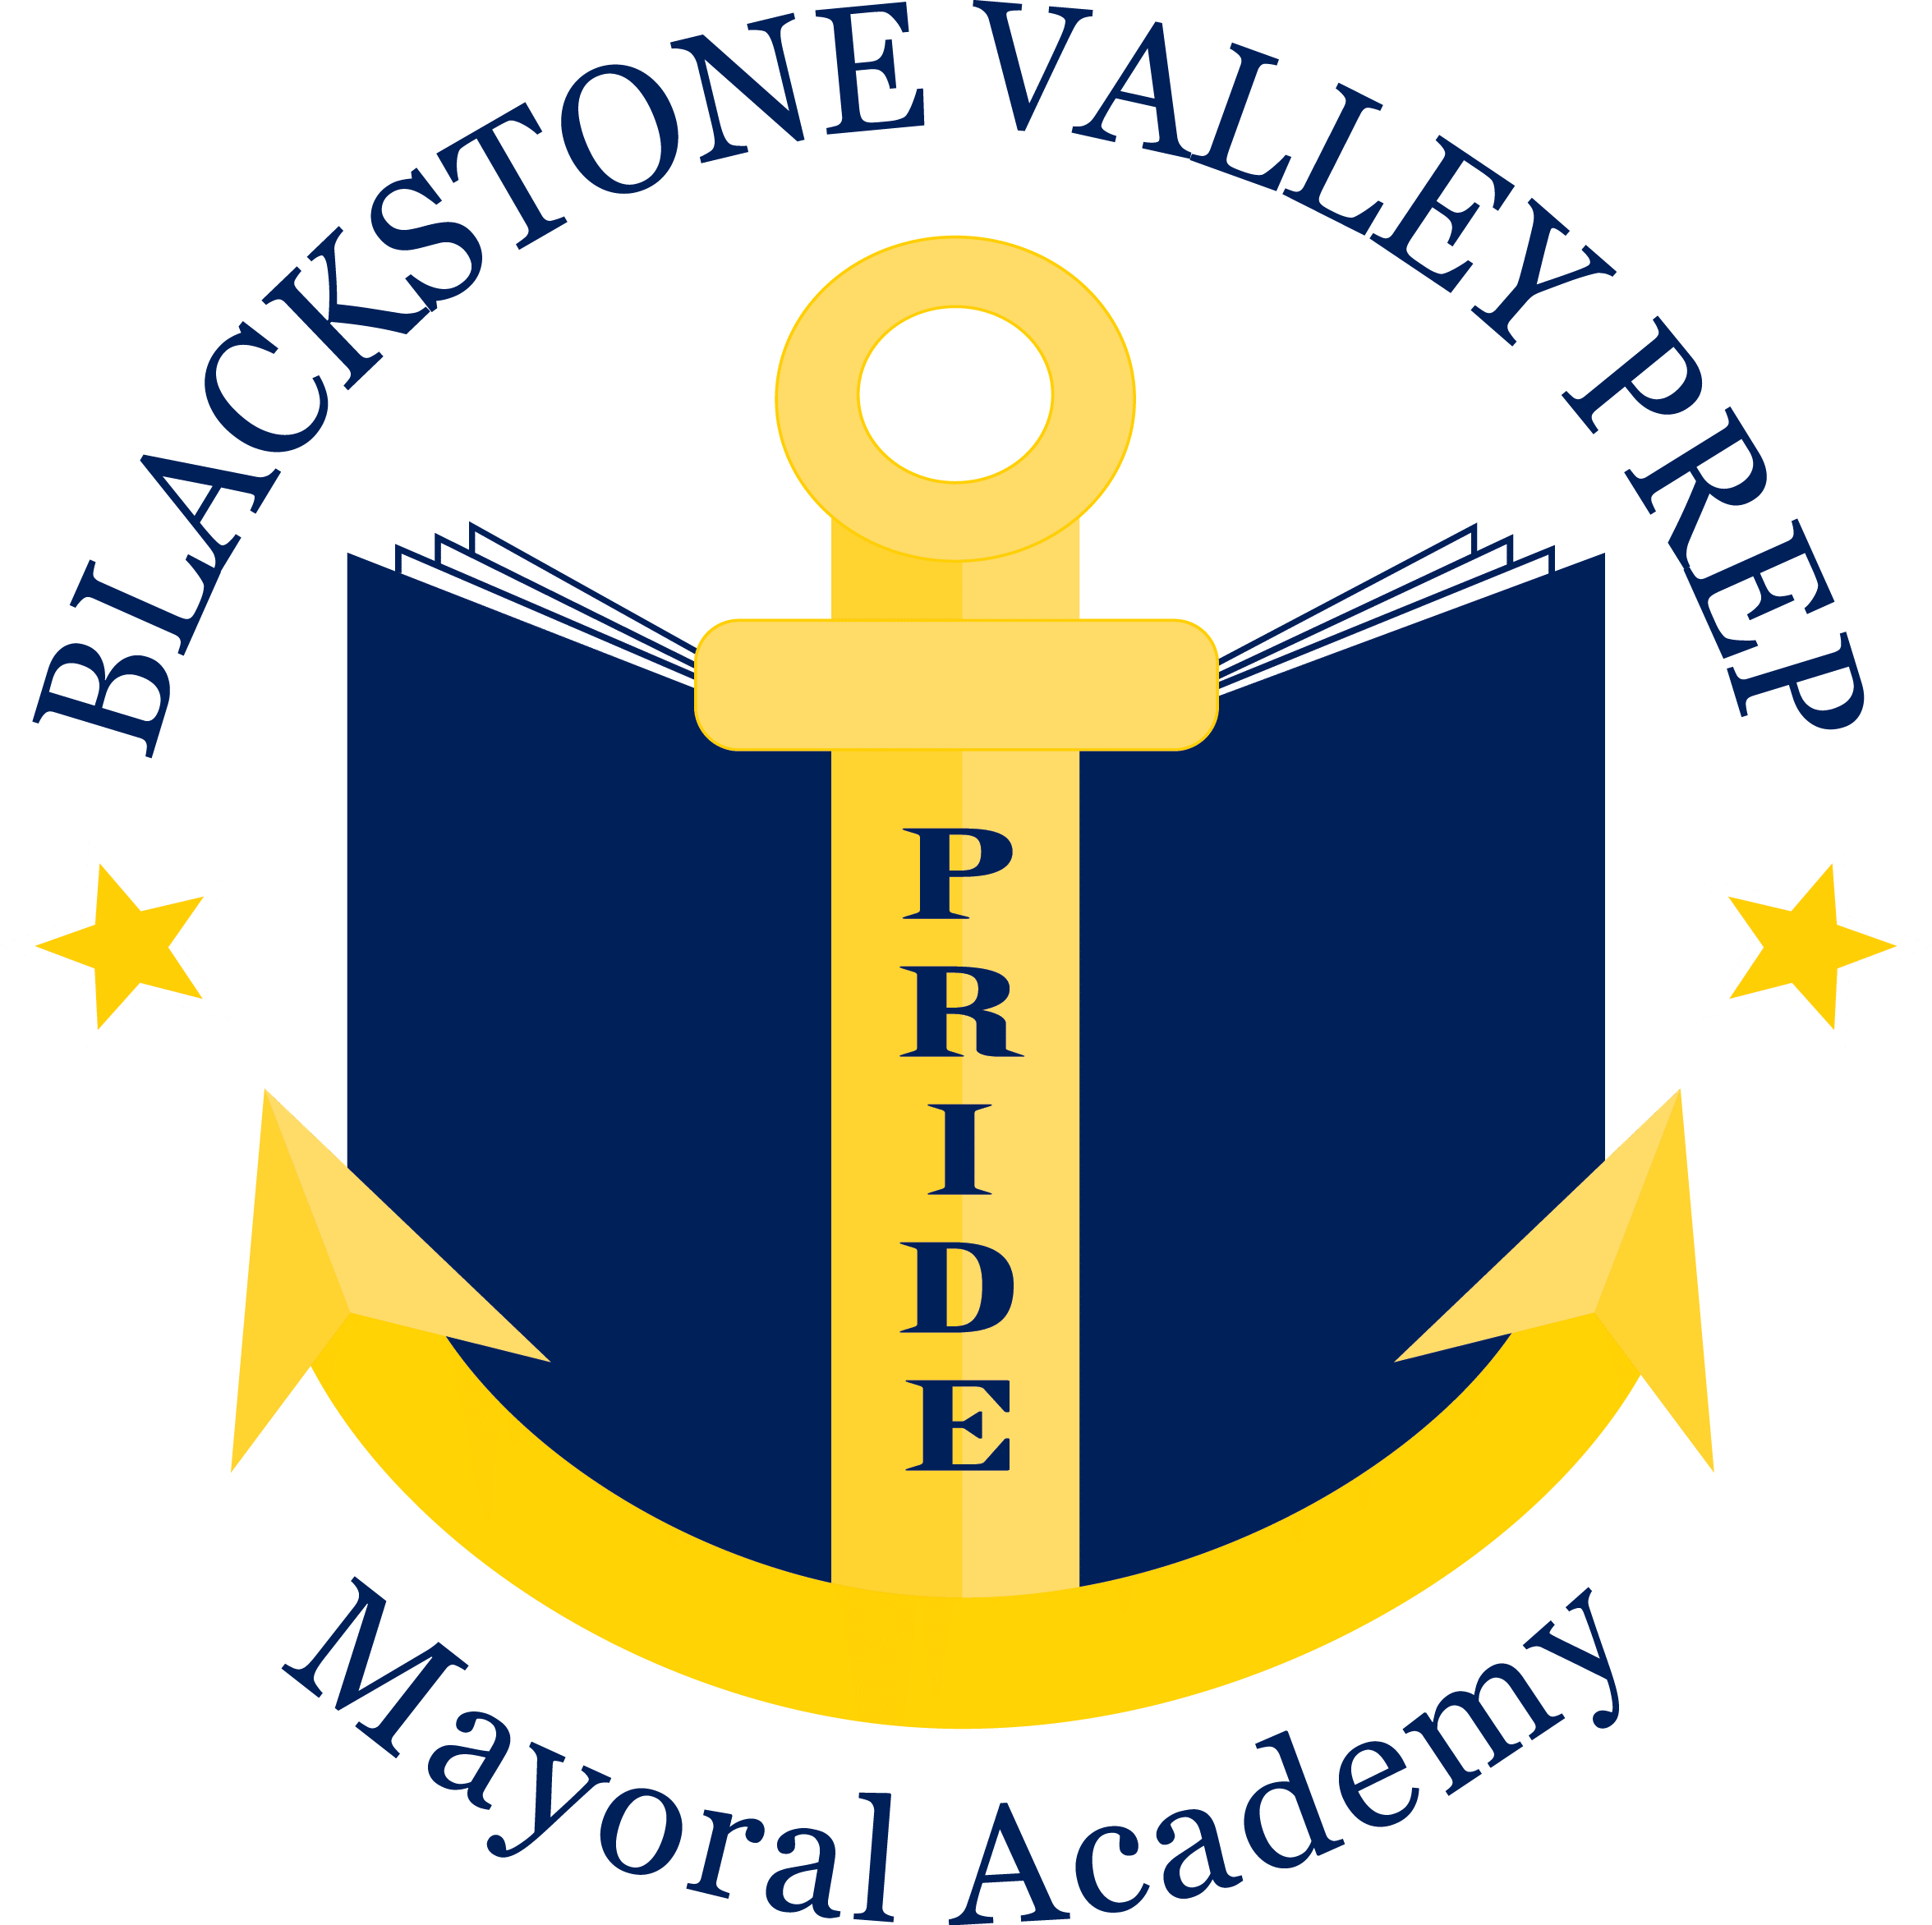 Blackstone Valley Prep Mayoral Academy Logo